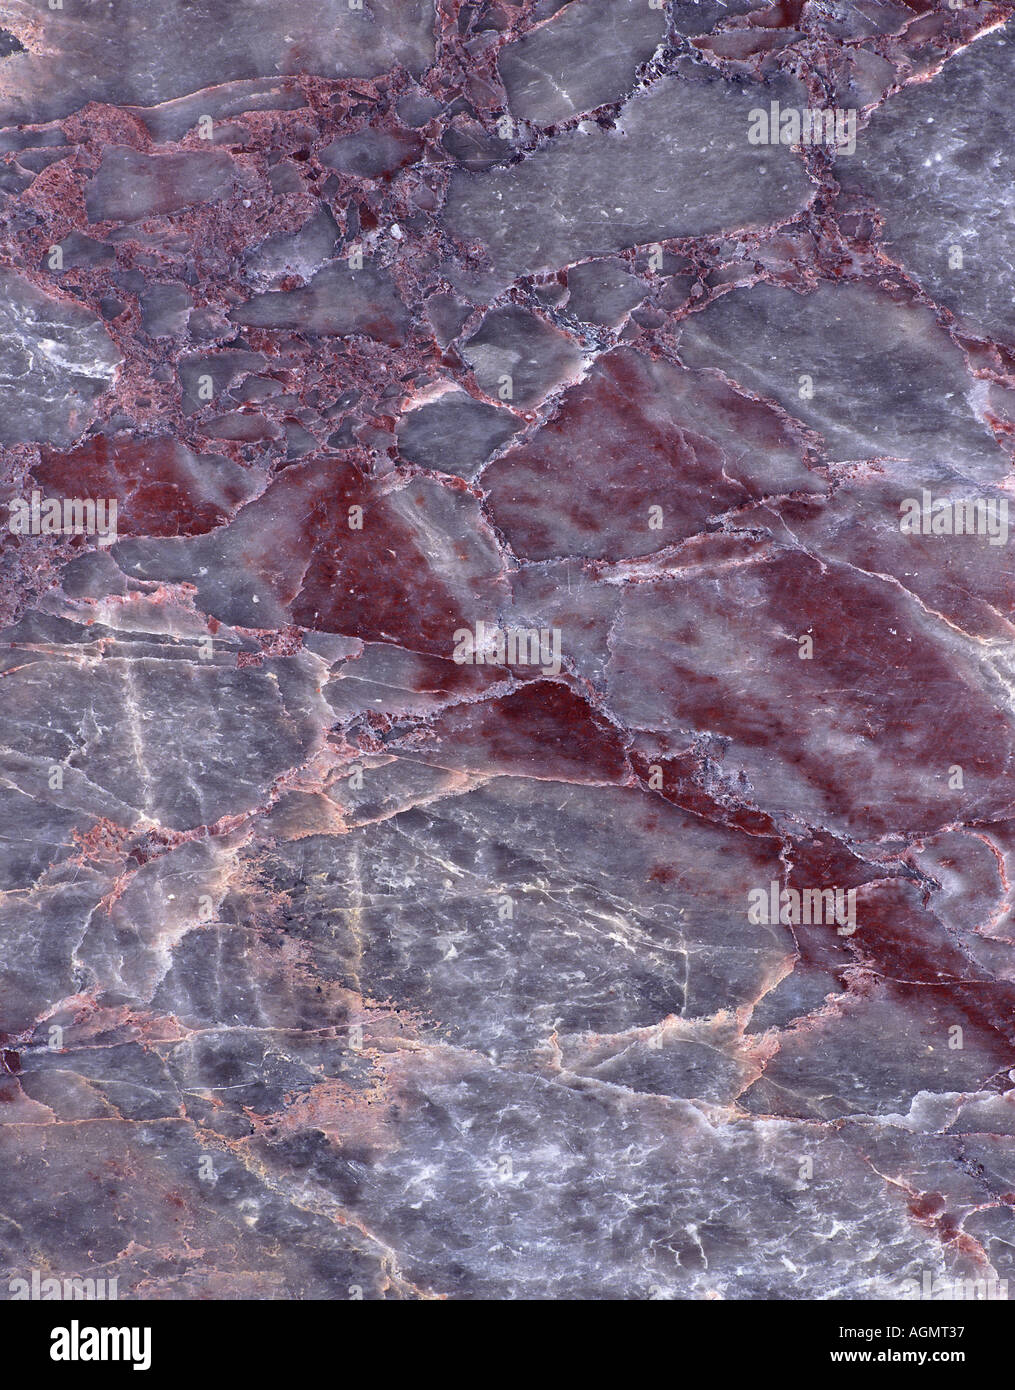 Background Texture Abstract Marble Italian French Spanish Countertop Stock Photo Alamy